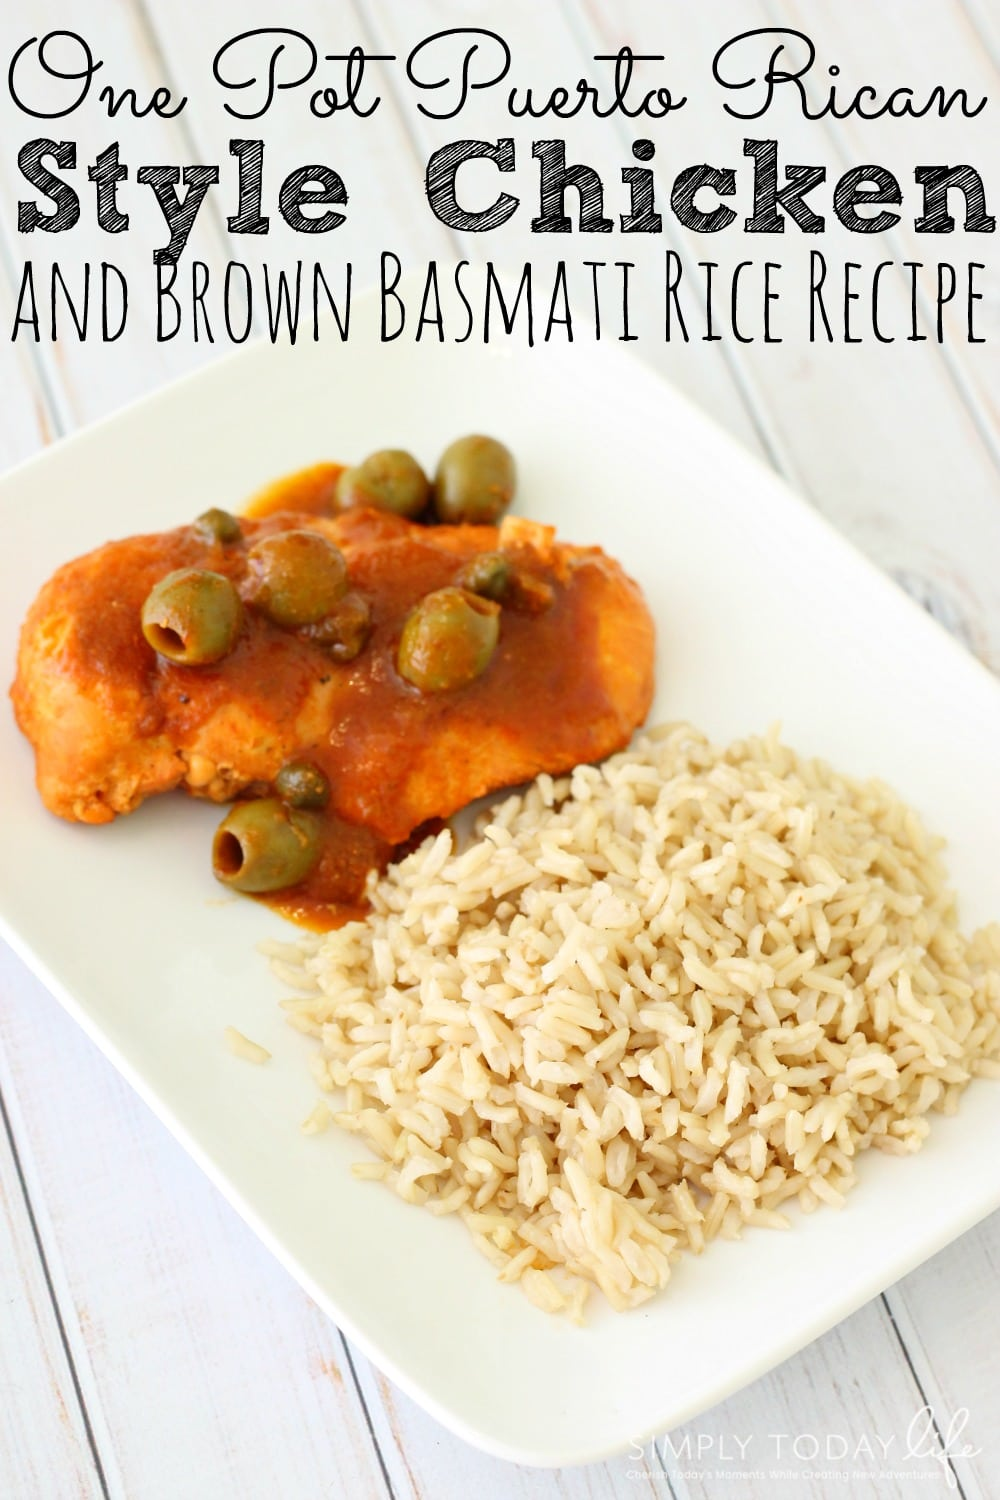 One Pot Puerto Rican Style Chicken and Brown Basmati Rice Recipe - simplytodaylife.com